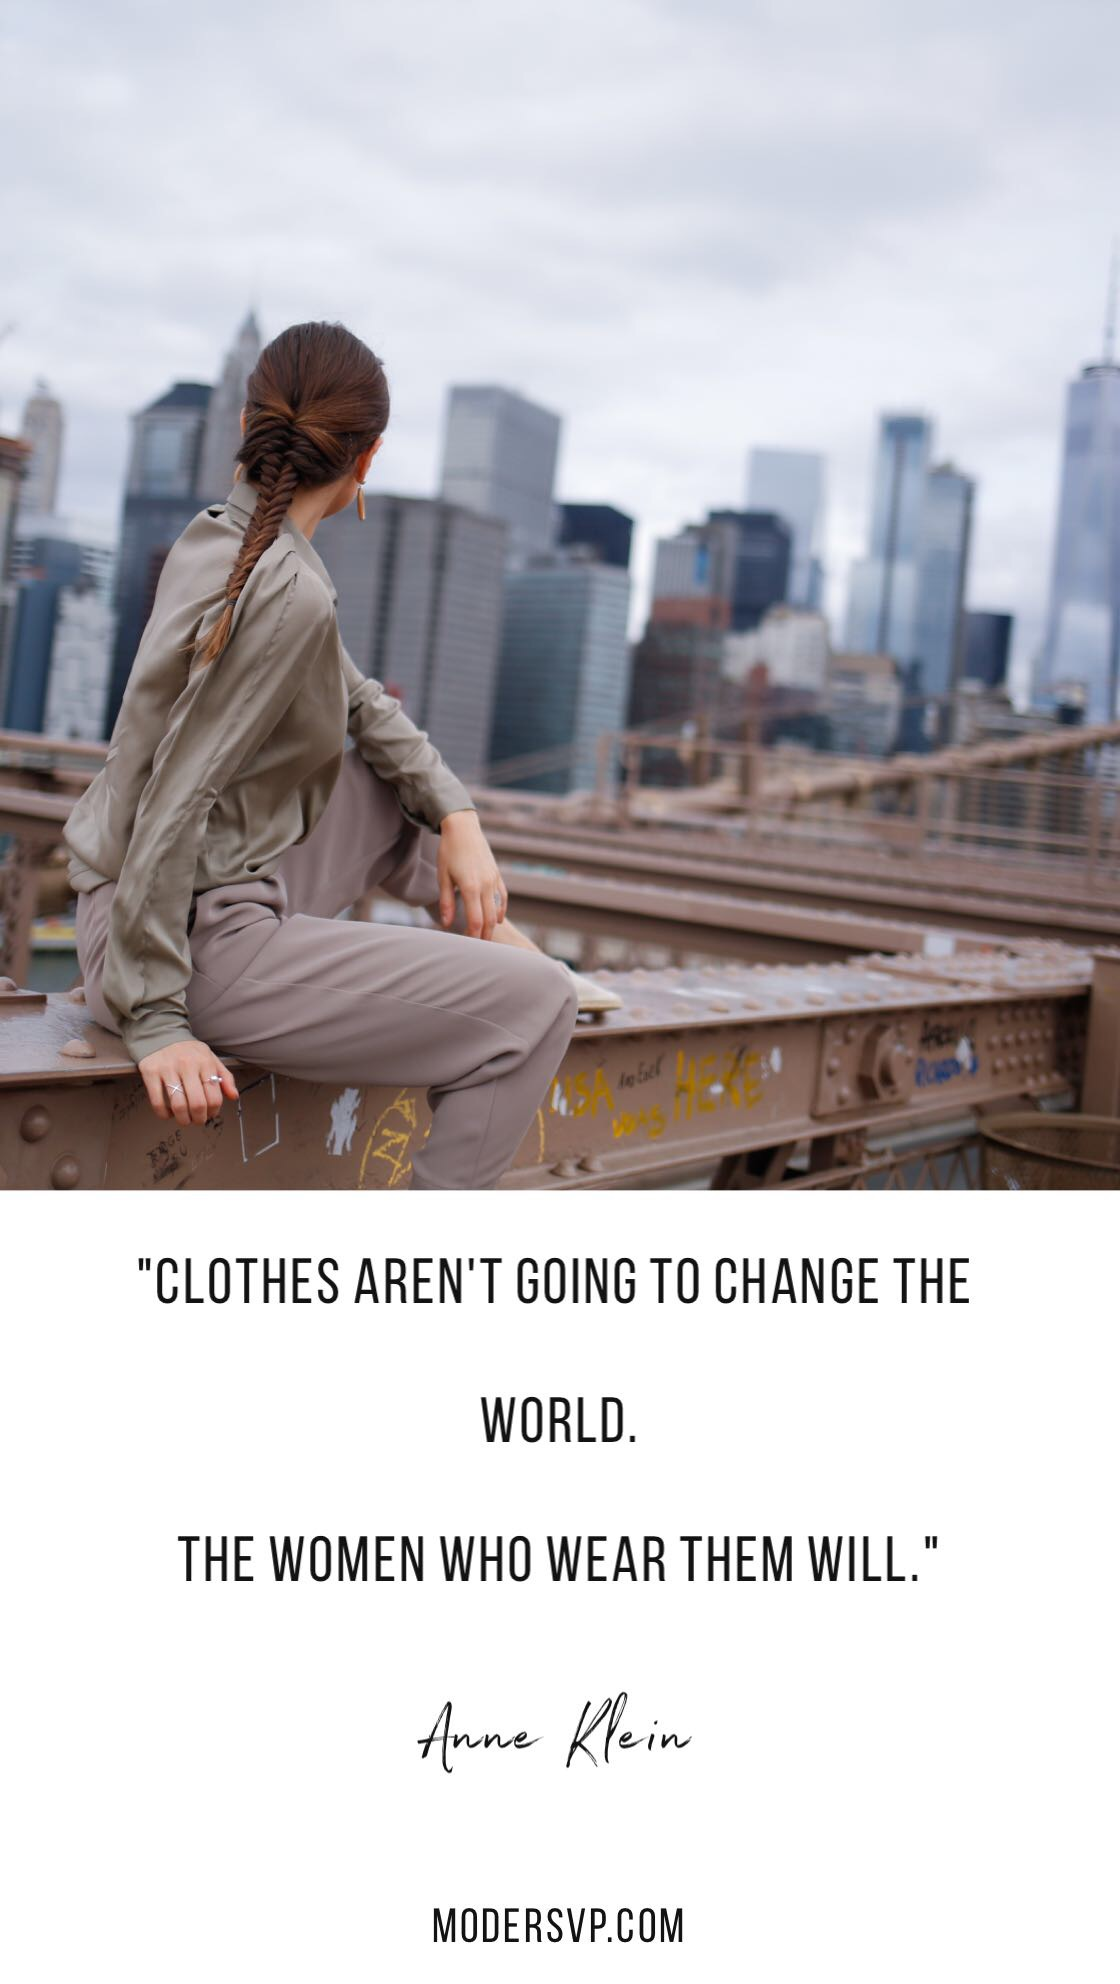 "Best Style quotes - Inspirational Fashion Quotes - ""Clothes aren't going to change the world. The women who wear them will."" Anne Klein- Read more style quotes from Anna Wintour, Diane Von Furstenberg, Coco Chanel and other fashion designers and style icons on Houseofcomil.com"